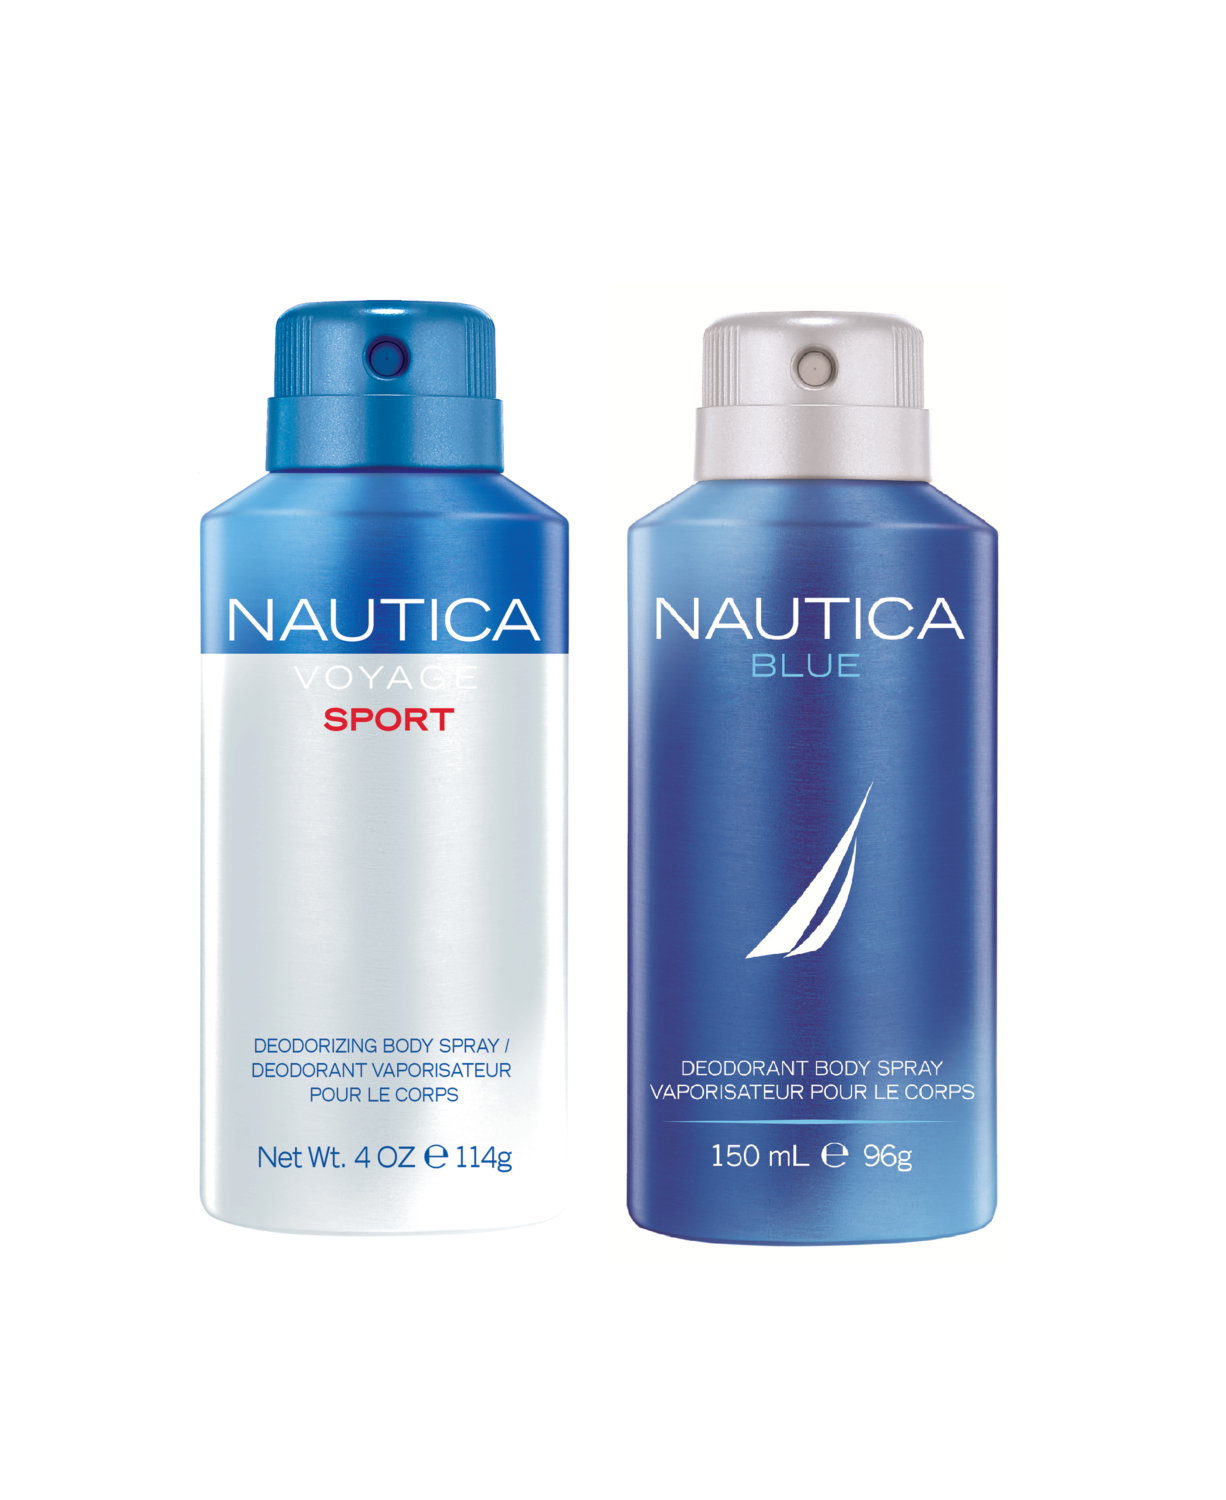 Nautica Voyage Sport + Blue Deo Combo Set - Pack of 2